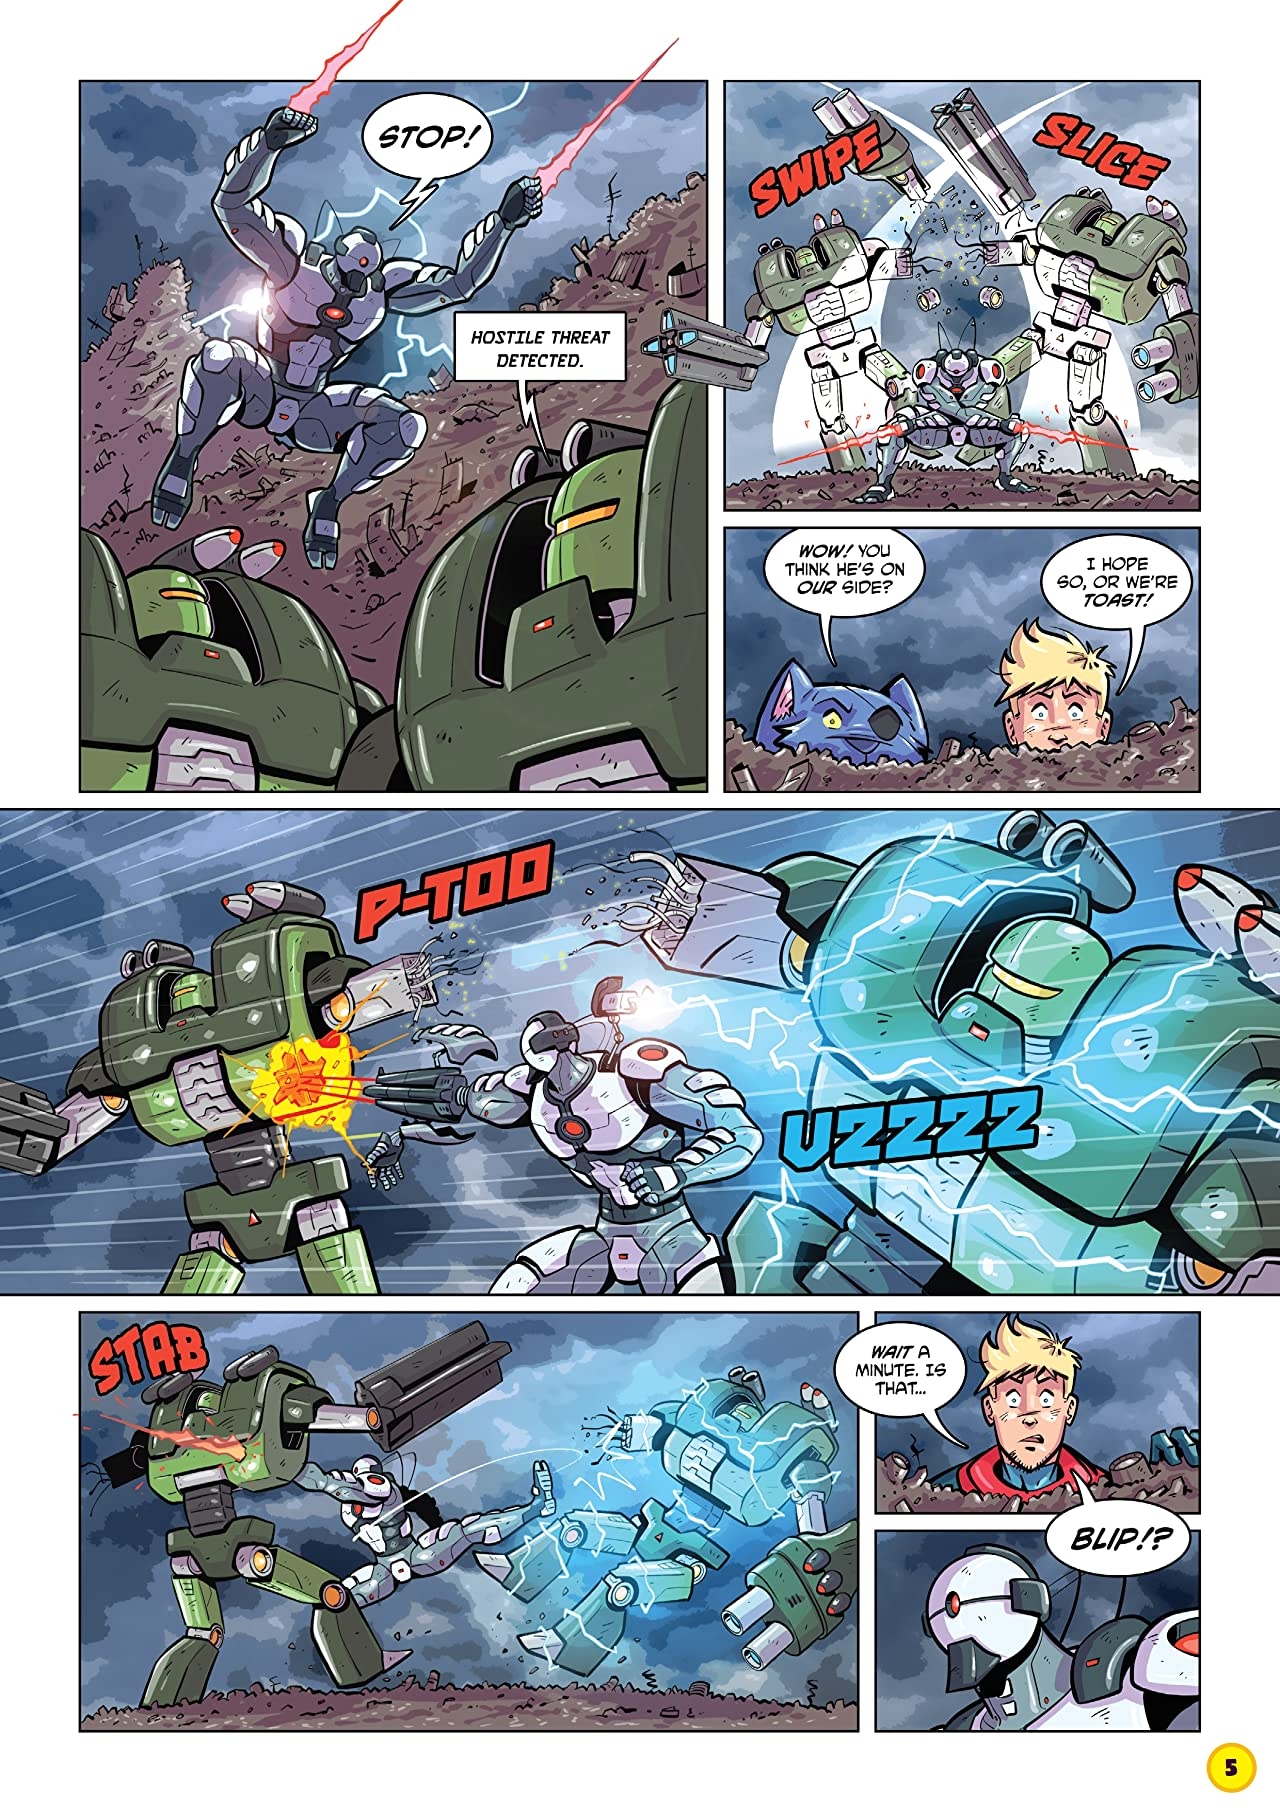 The Phoenix #259: The Weekly Story Comic